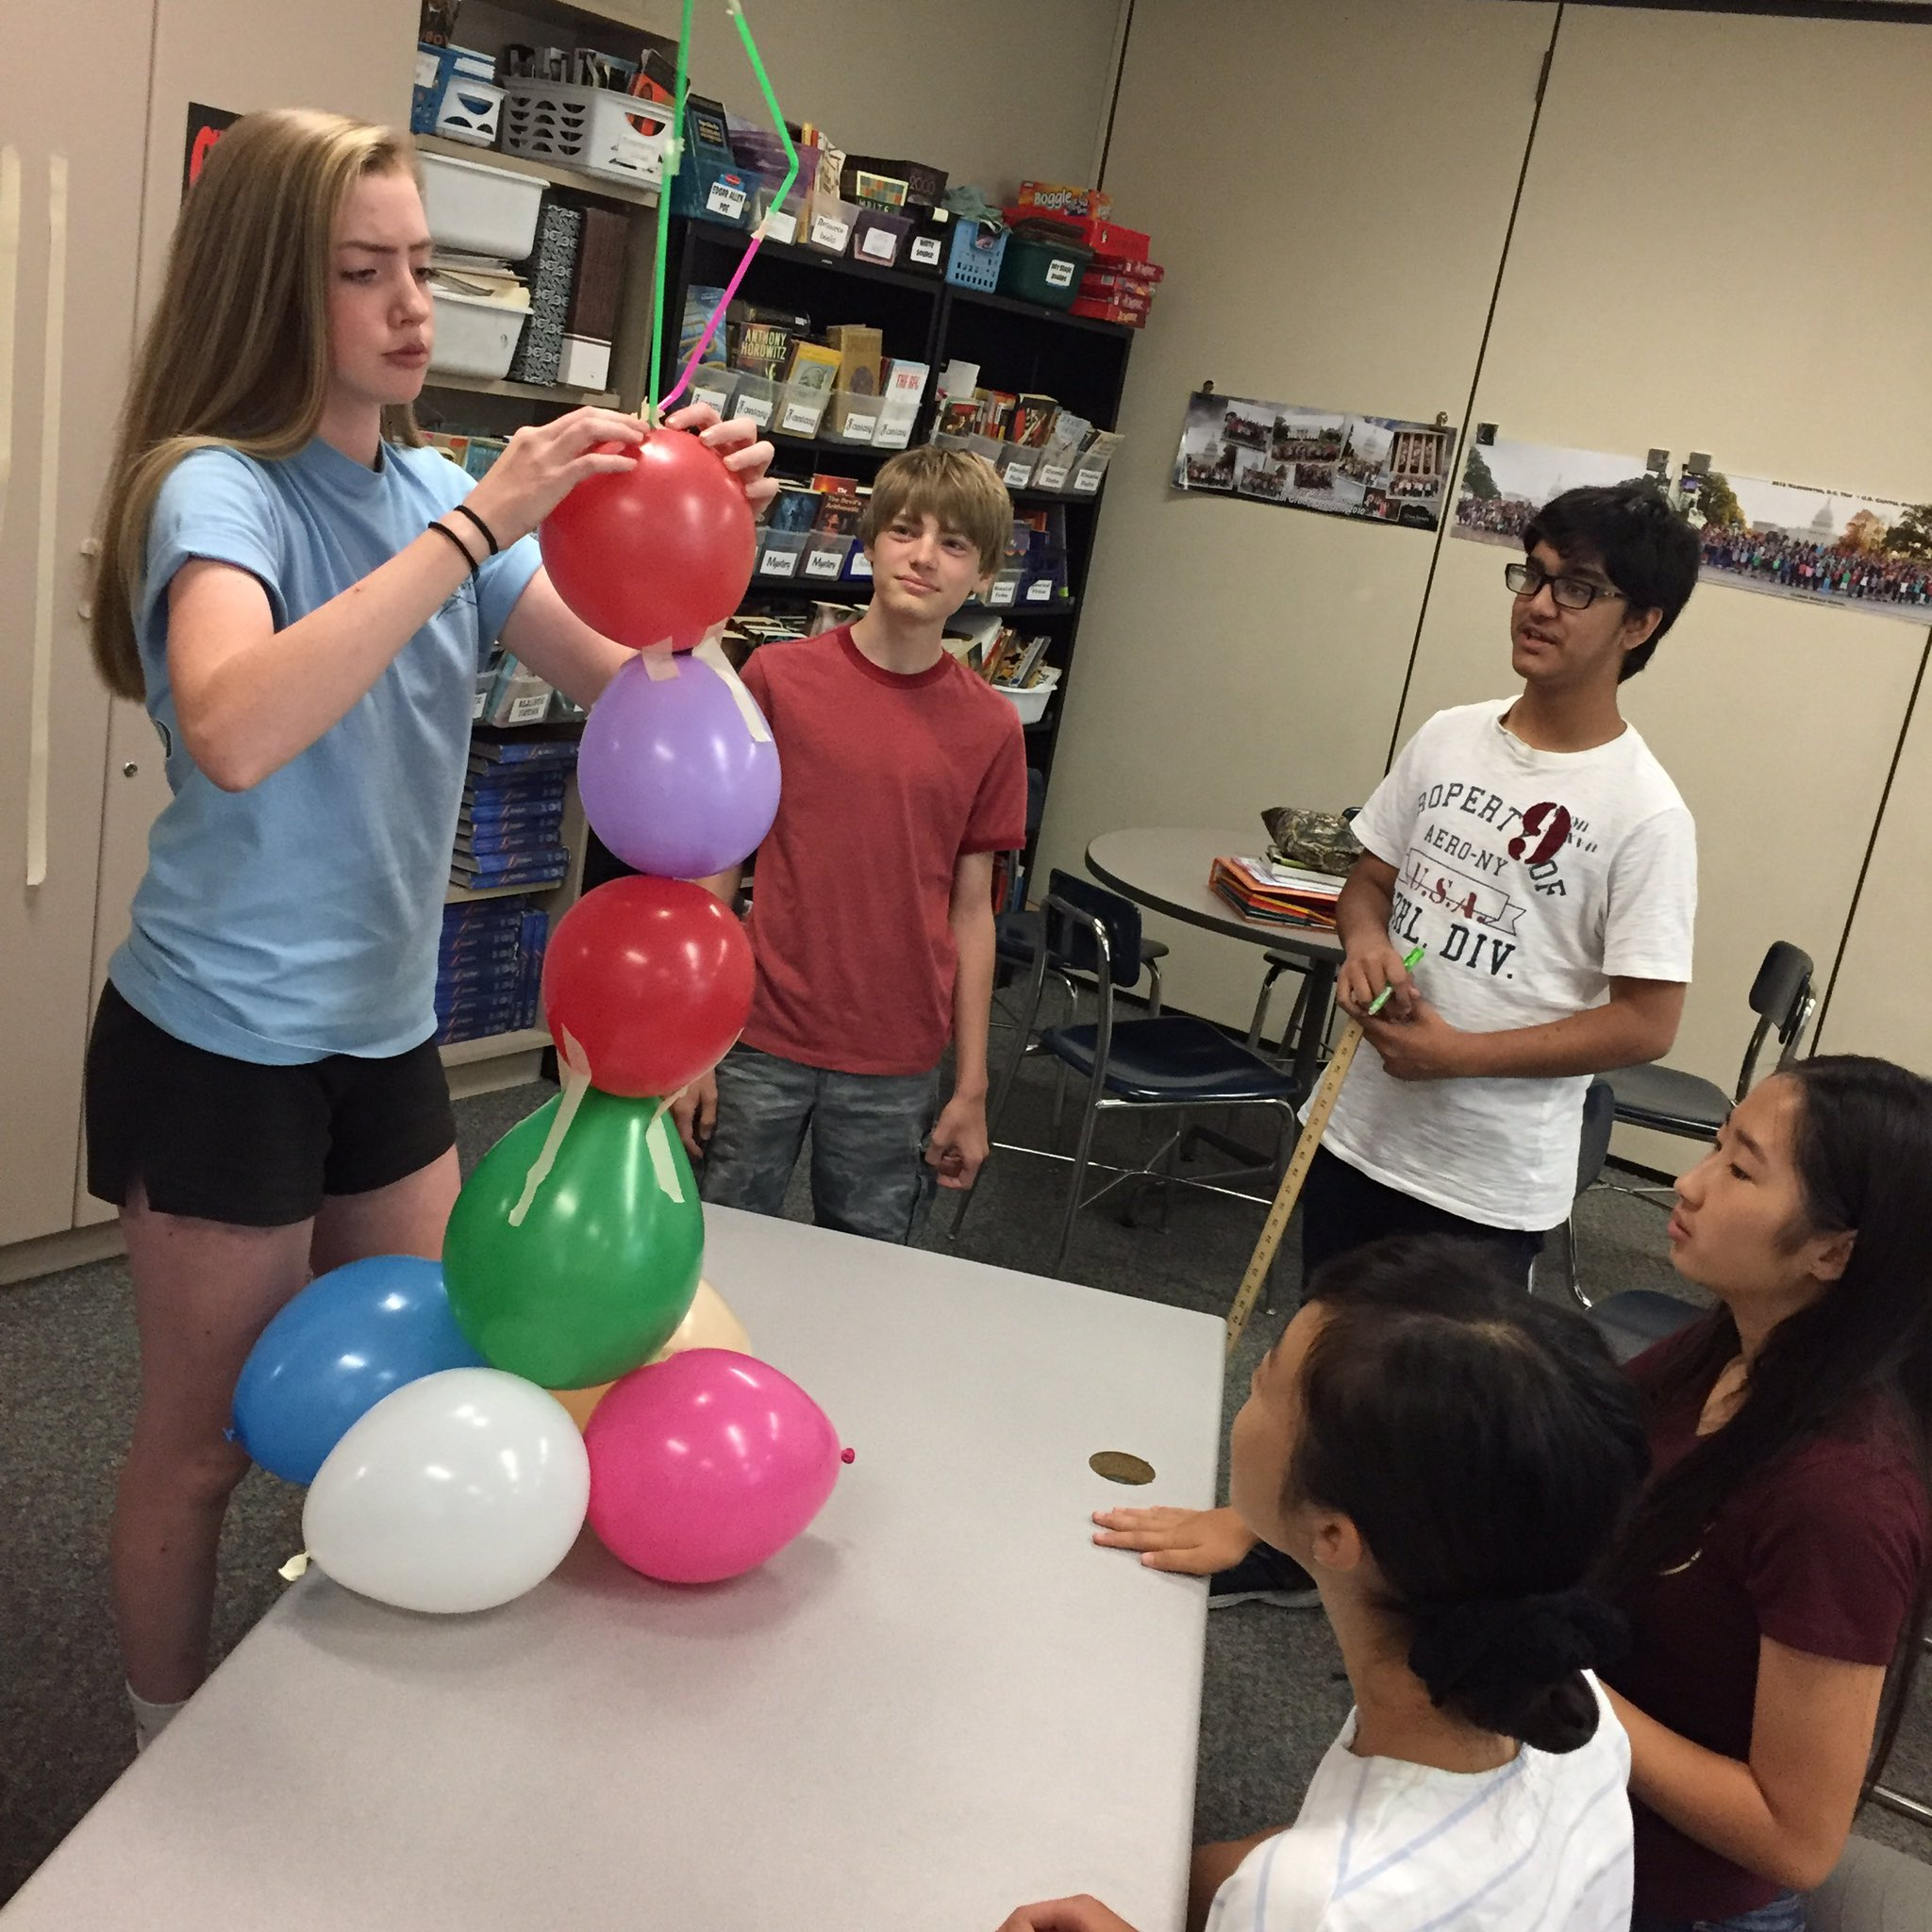 Collaborate to build the tallest free-standing balloon tower. 8 balloons. 4 straws. 6 feet of tape. #thedublindifference @KarrerMS https://t.co/7CcgpqF8Wc